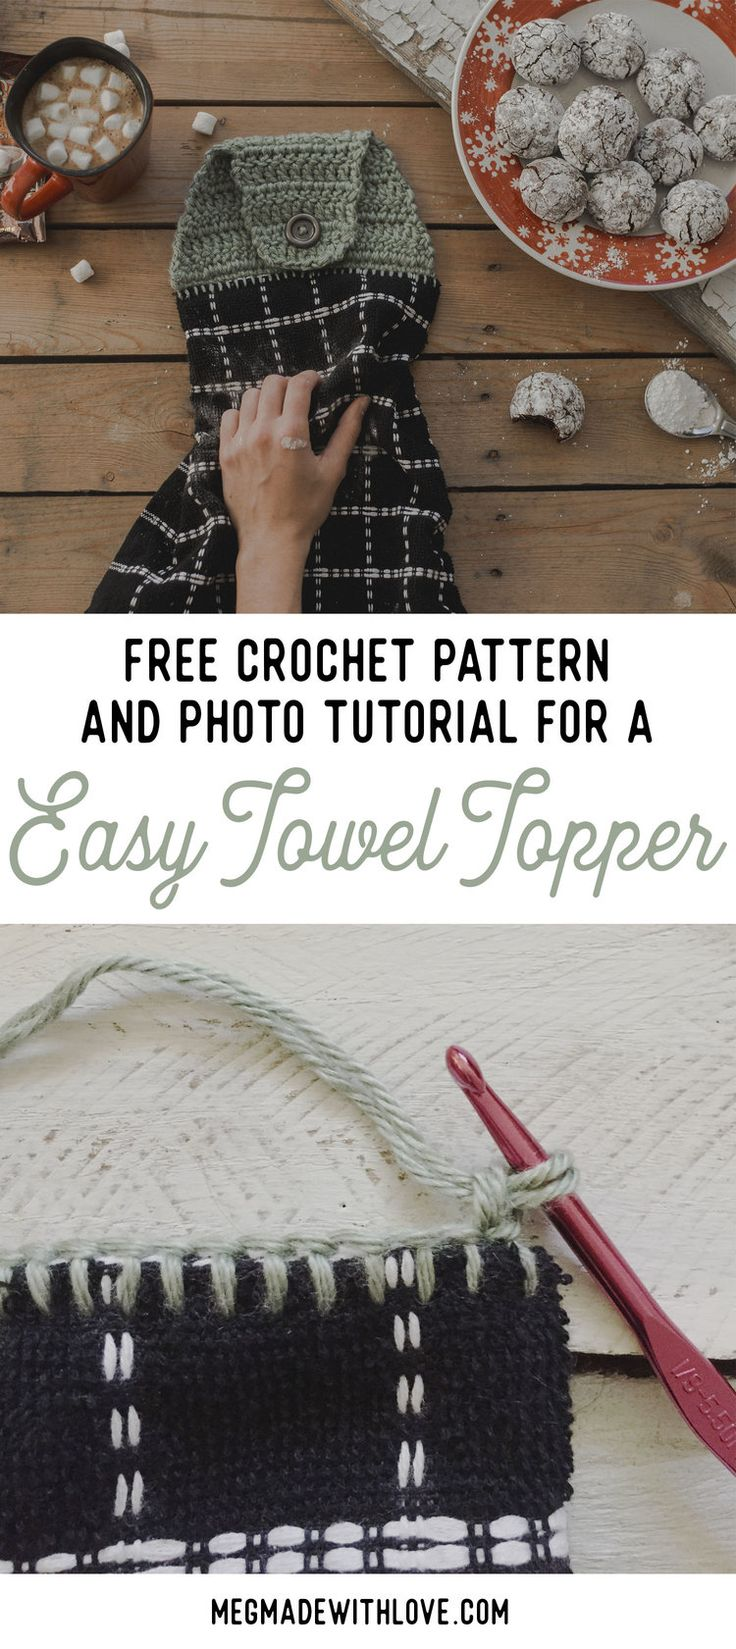 512 best Dishcloths/scrubbies images on Pinterest | Crocheting ...